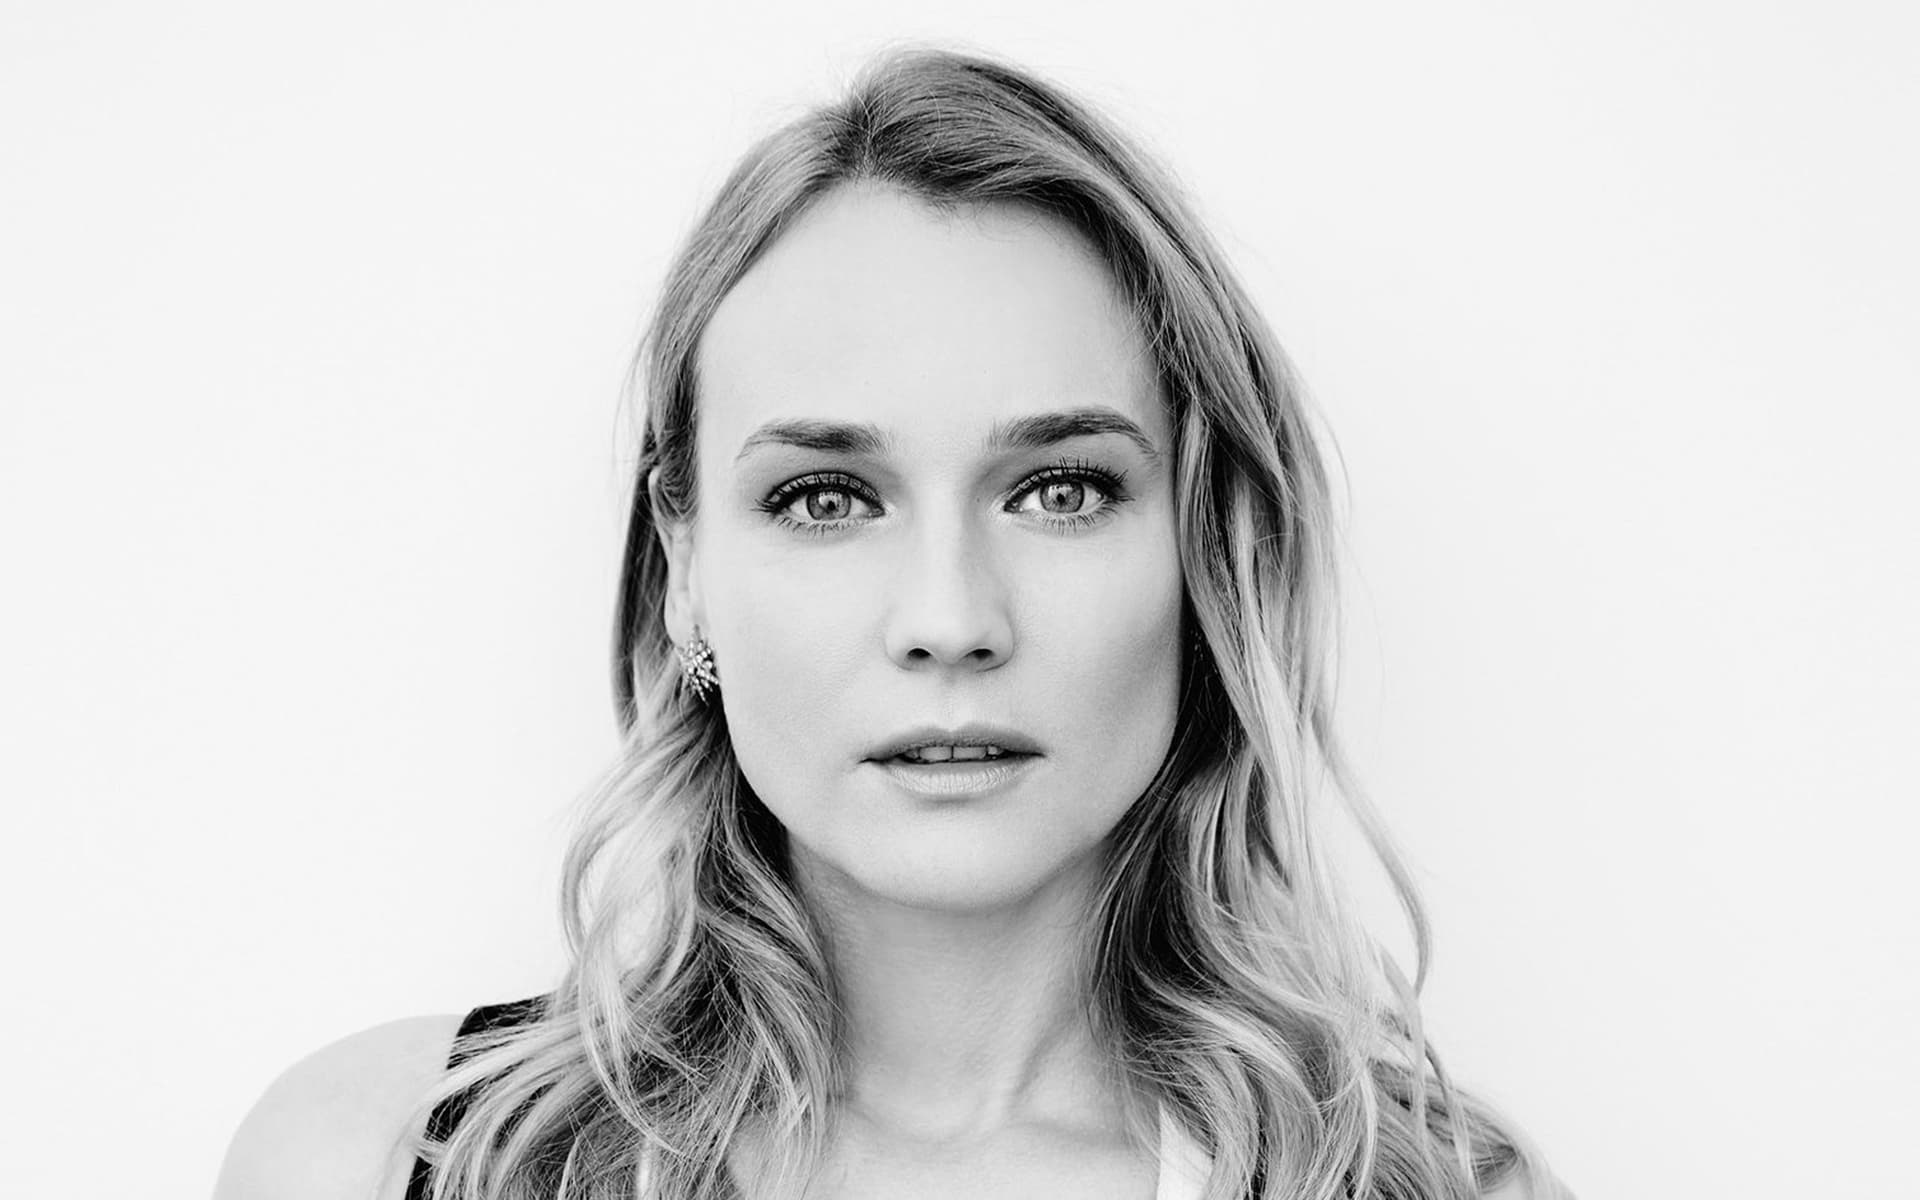 27 Diane Kruger Wallpapers High Quality Resolution Download